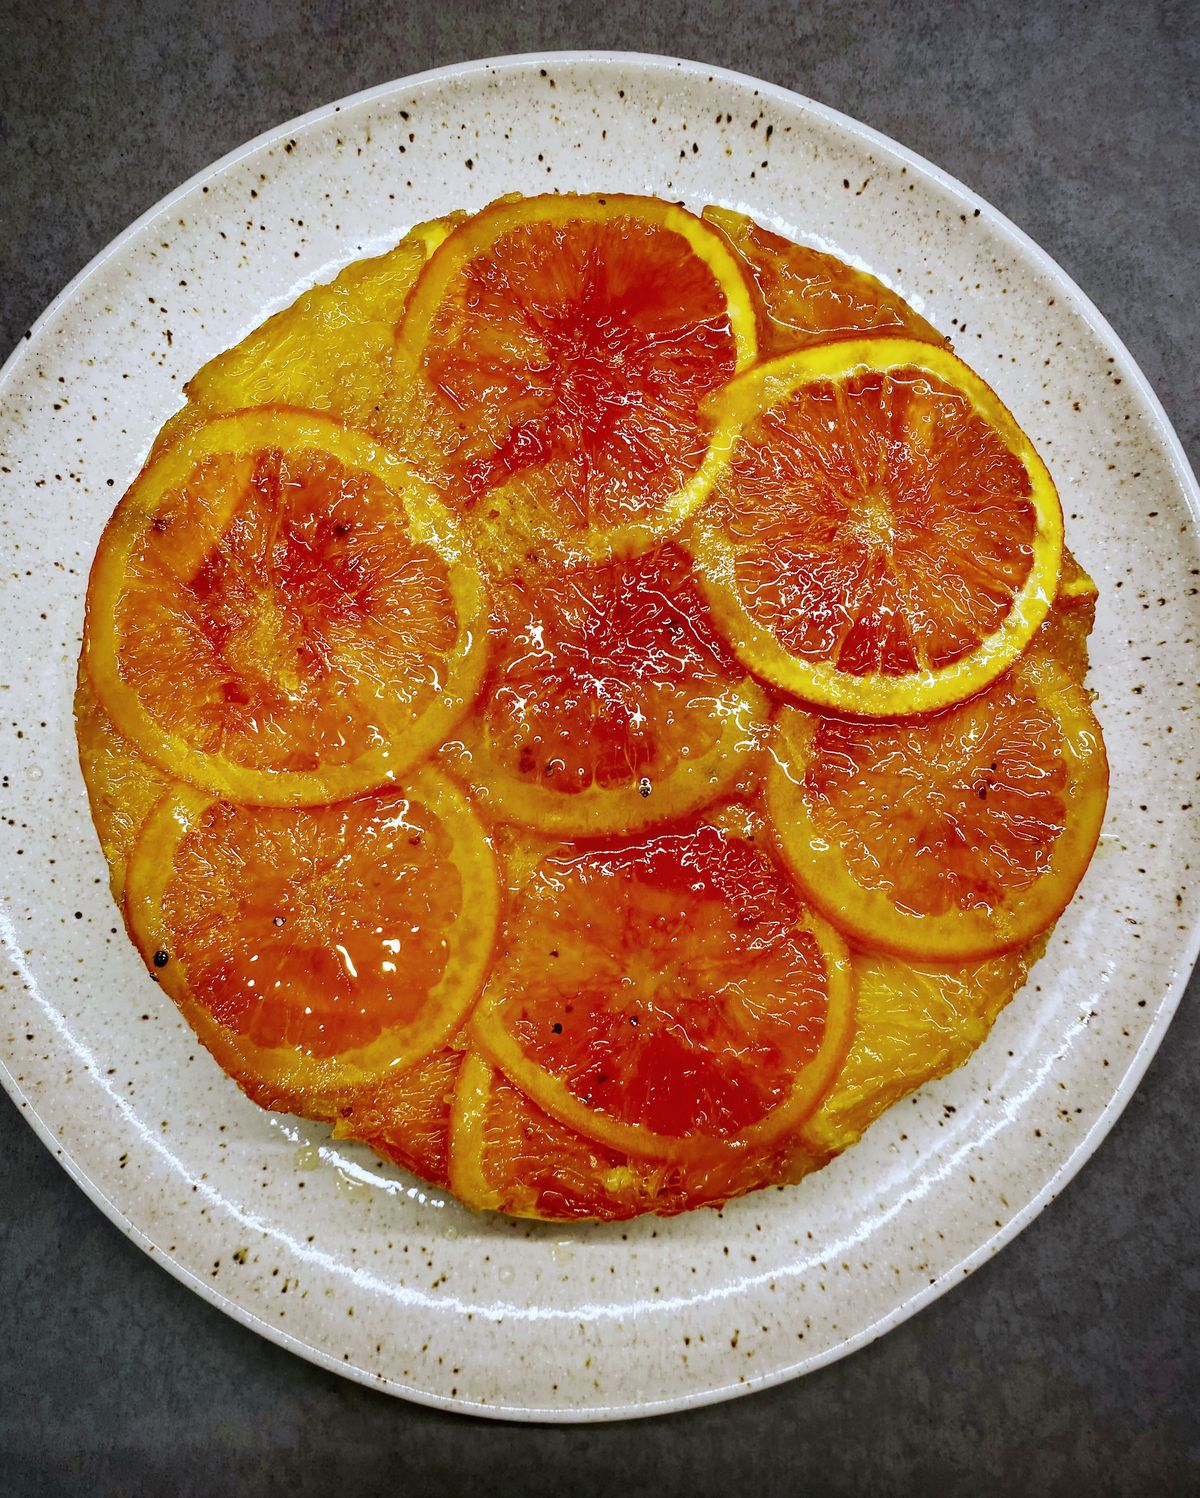 a cake with orange slices on top